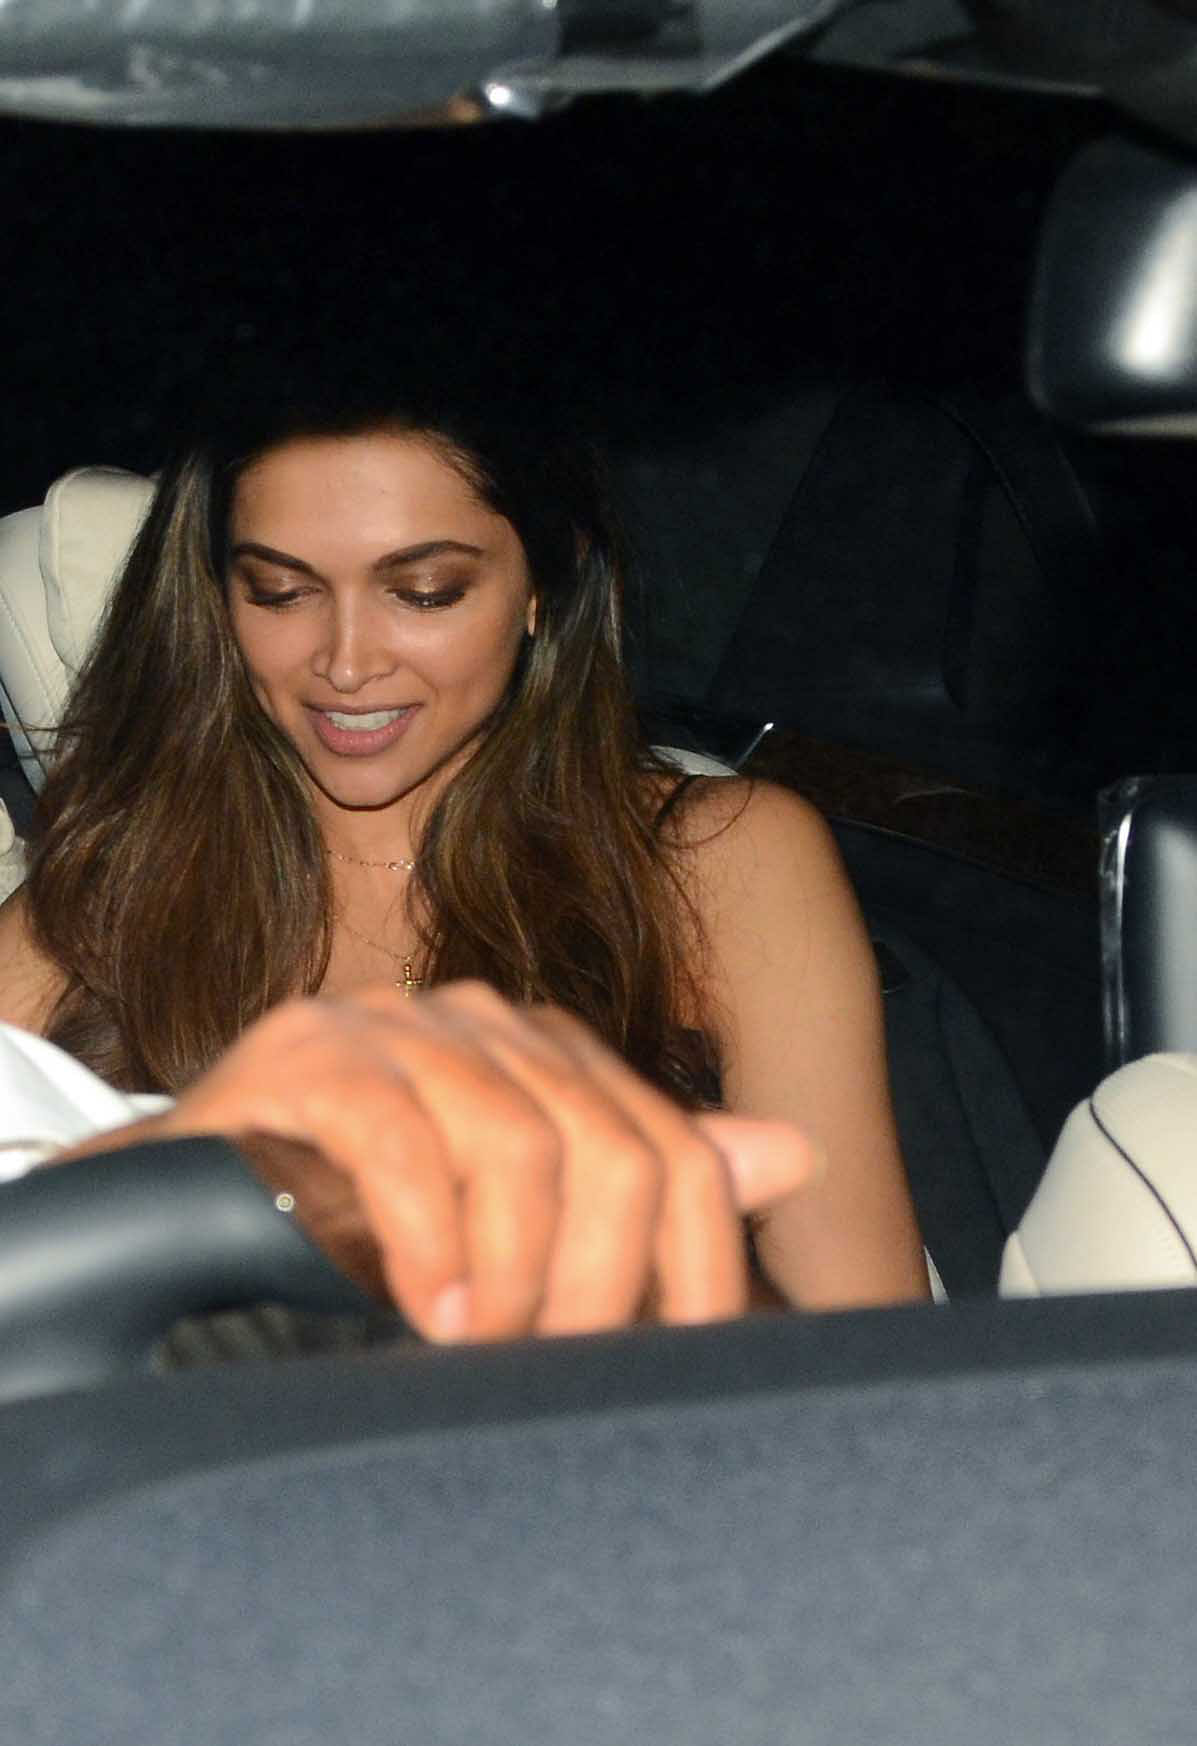 Deepika catches up with some text messages on her phone. (Photo: Yogen Shah)